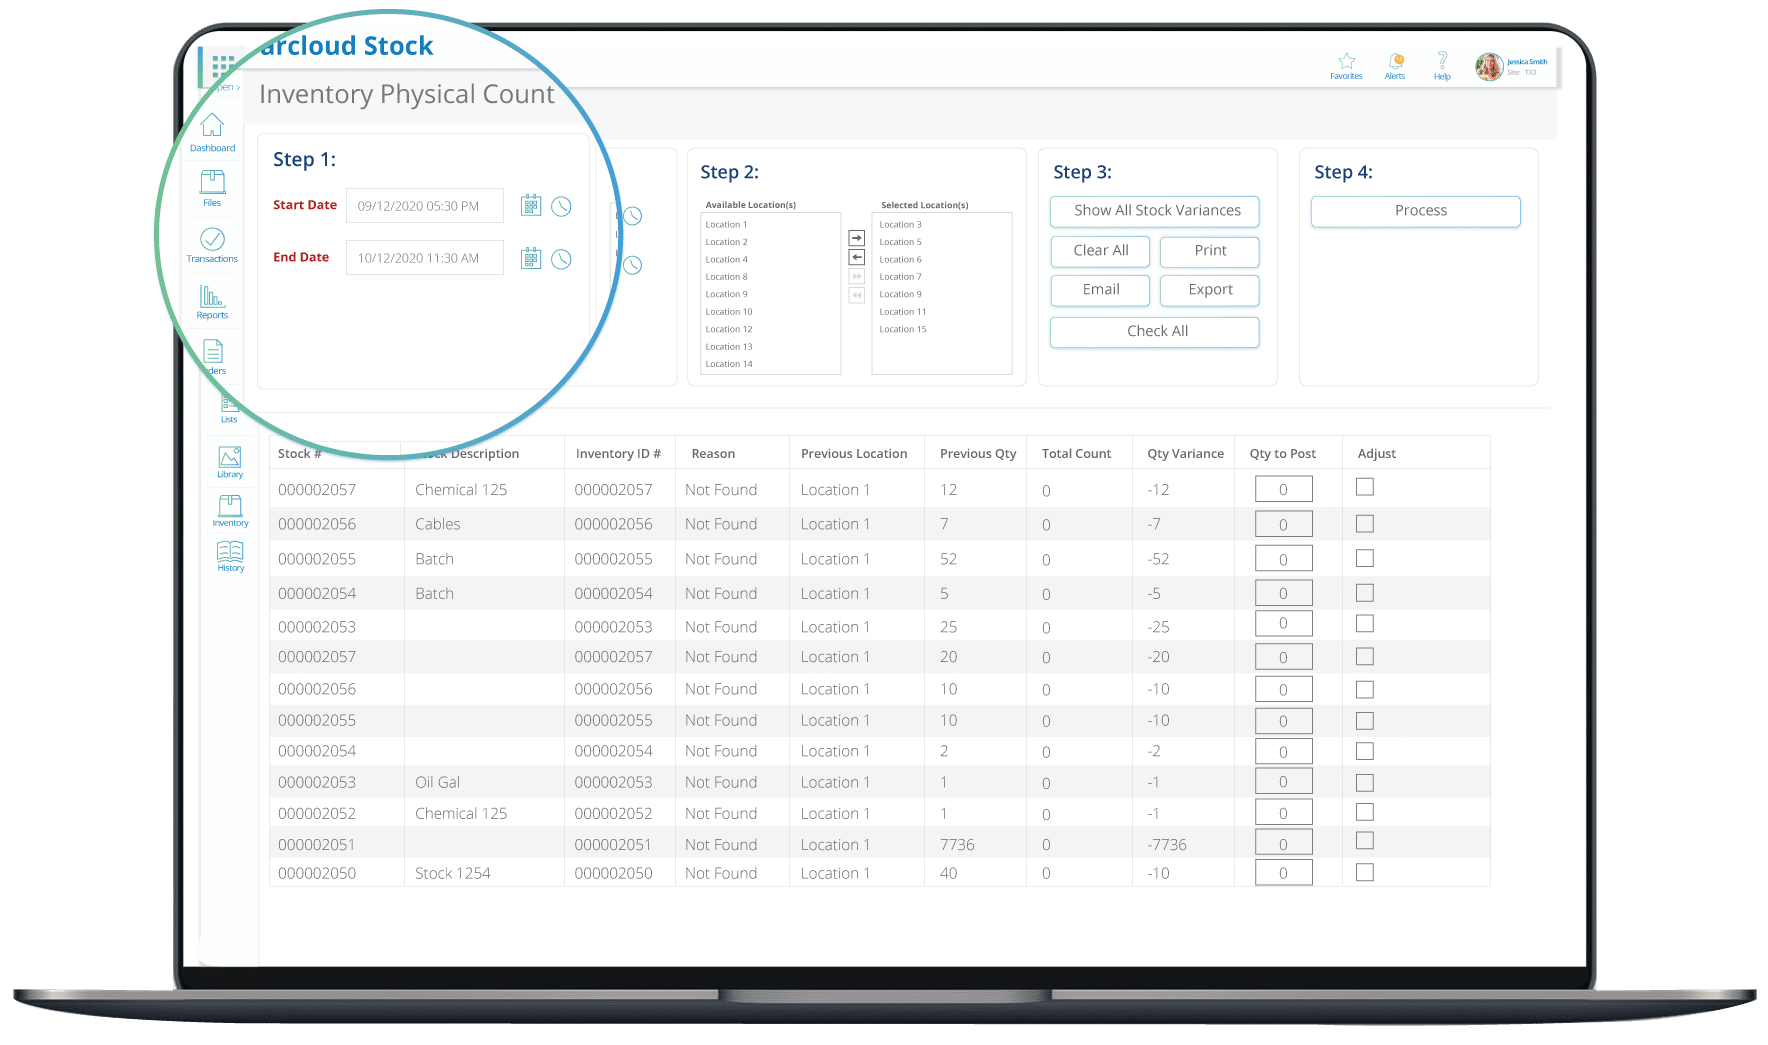 inventory system asset tracking image